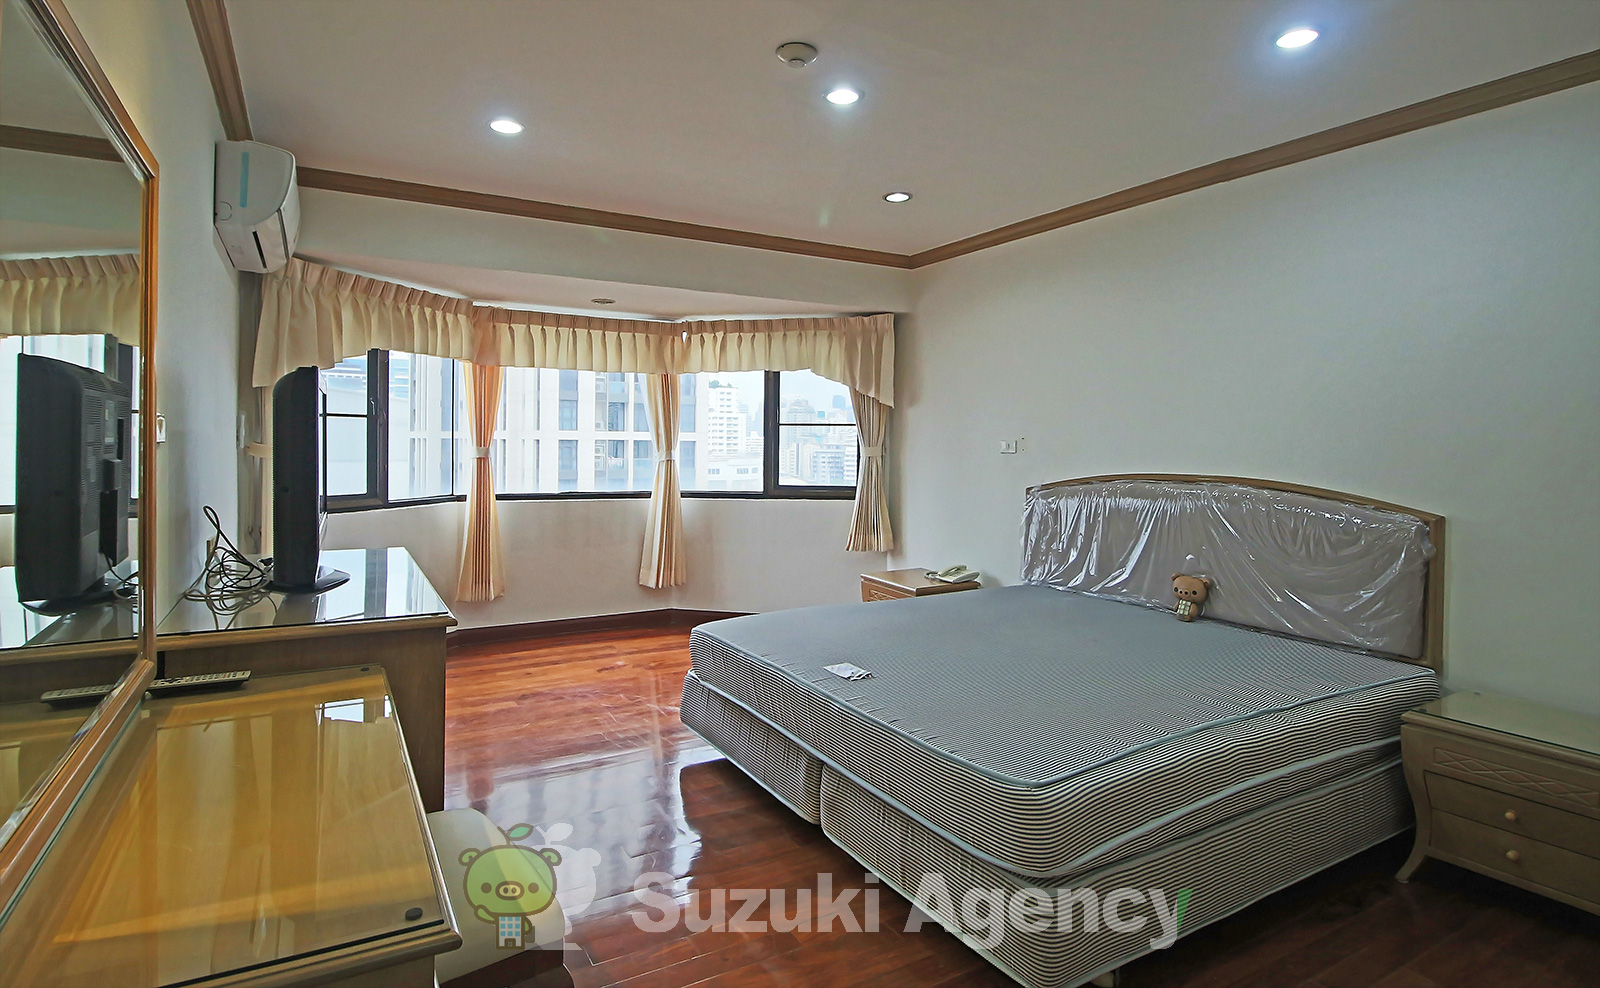 Baan Suanpetch:2Bed Room Photos No.7